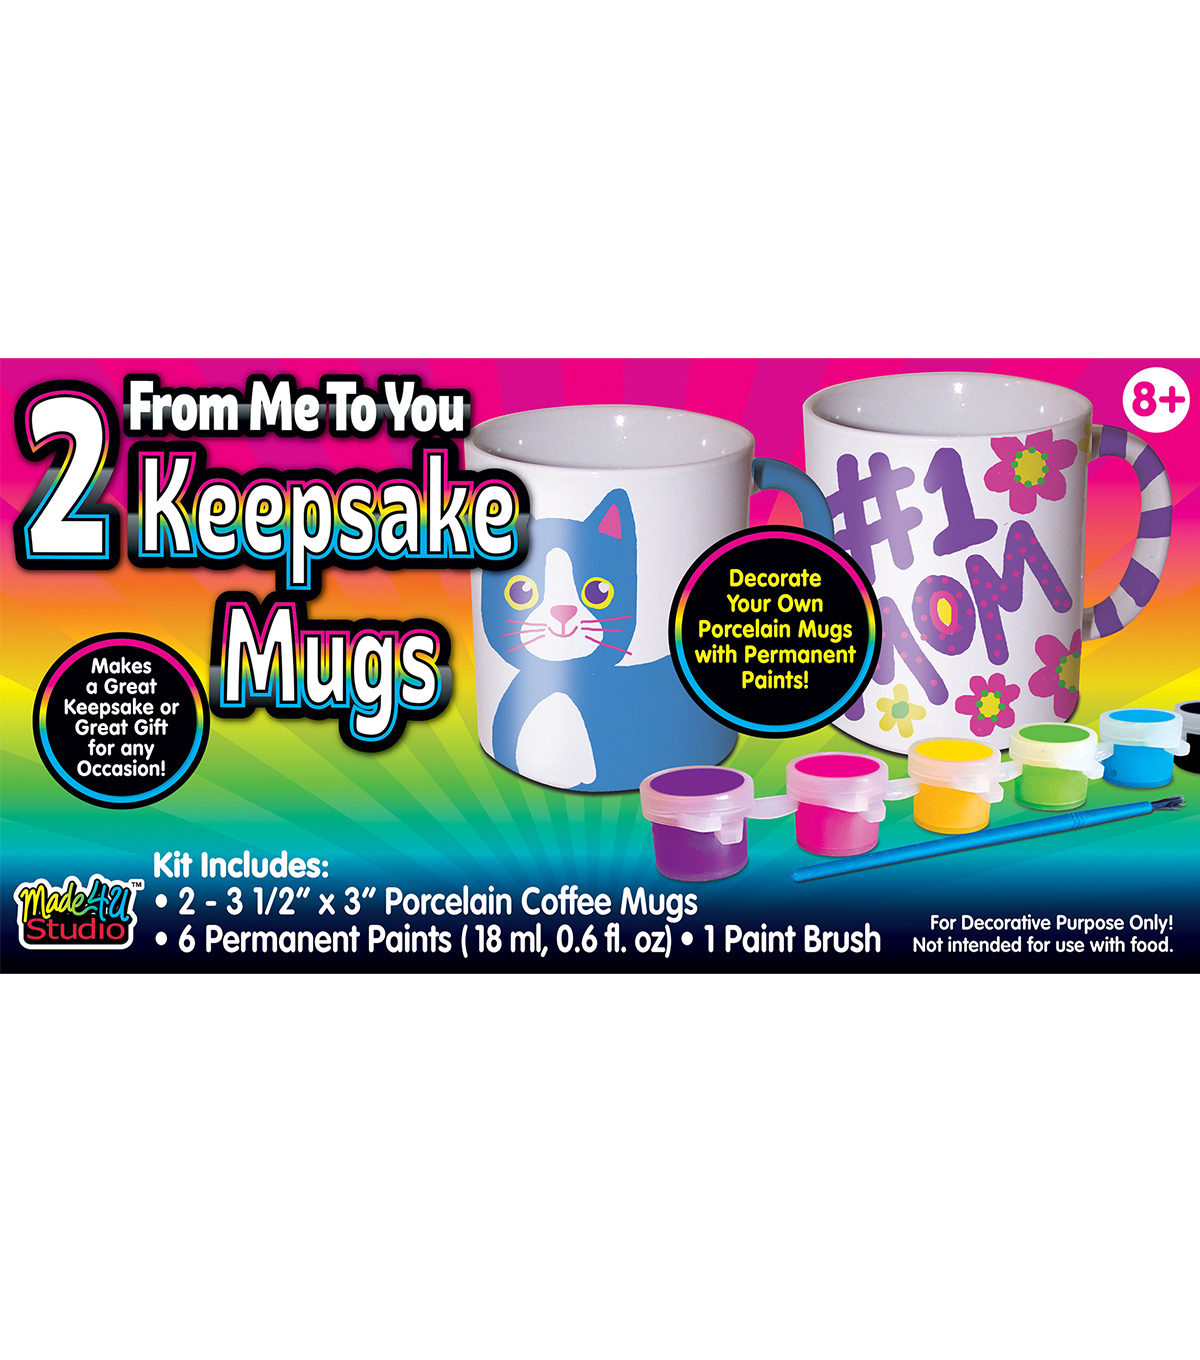 Made 4 U Studio-From Me To You Keepsake Mugs